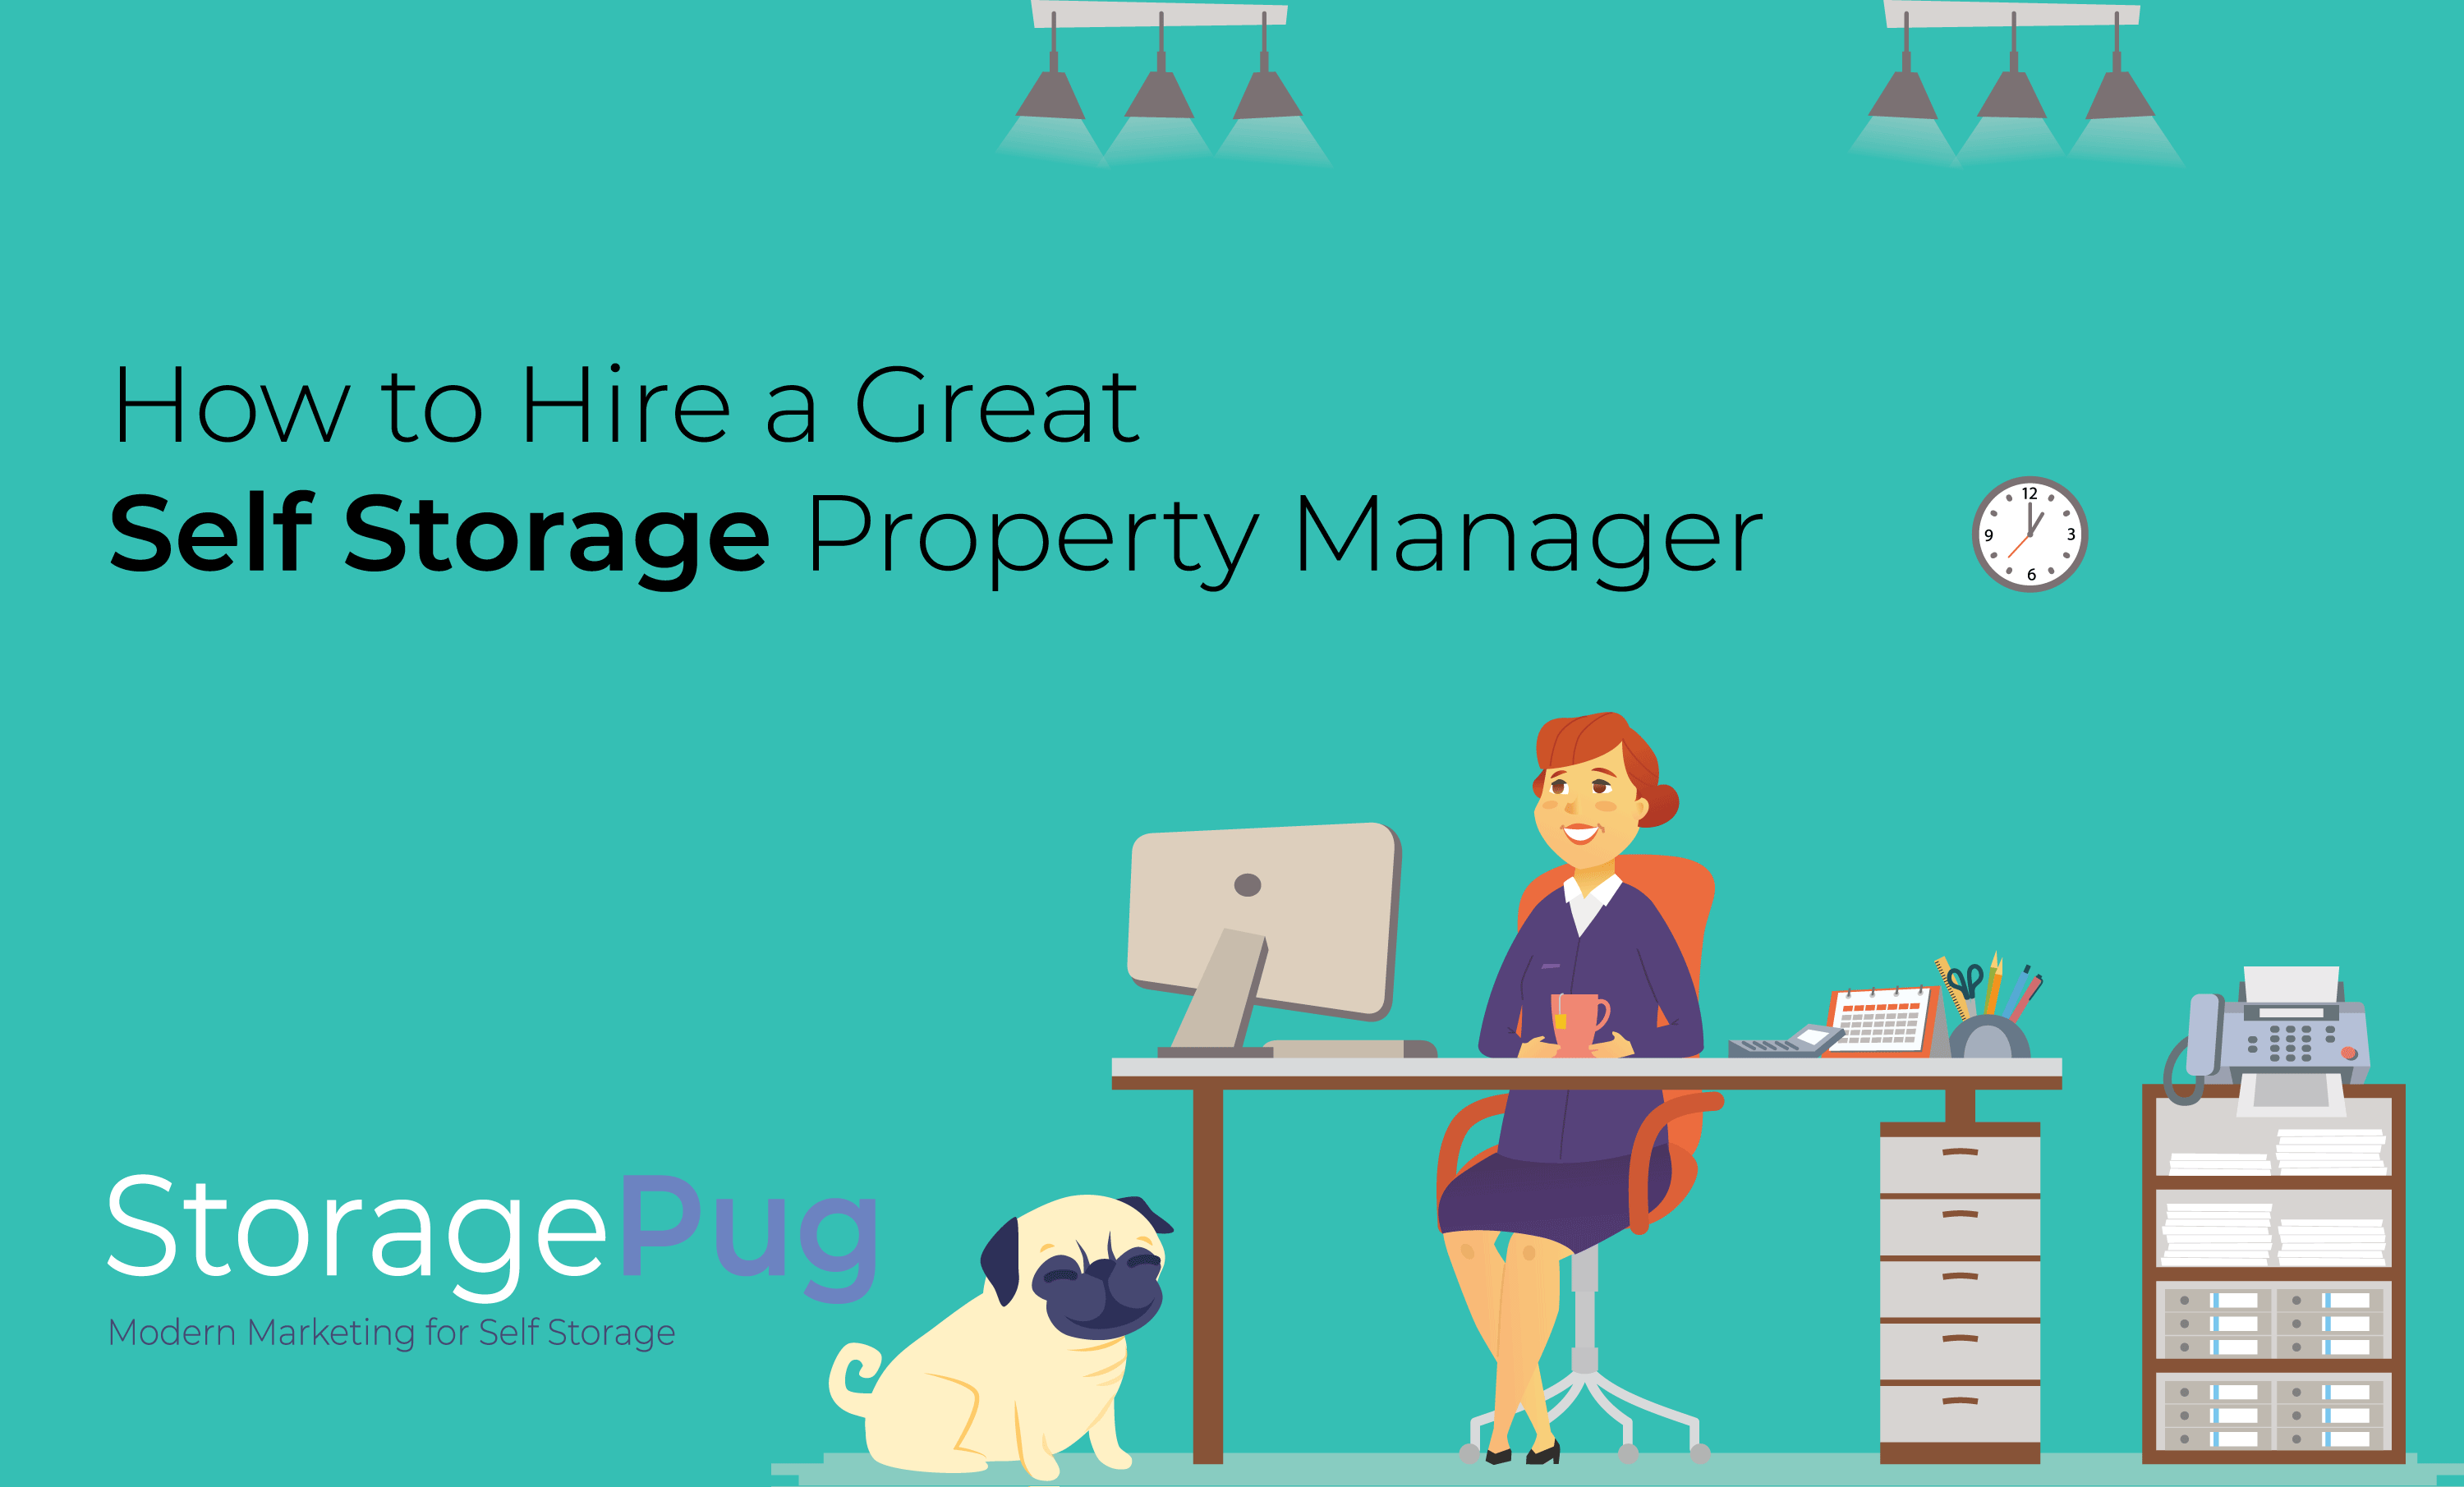 Few industries are like the self storage industry in that the success or failure of a location relies so considerably on one or two employees - the property managers.